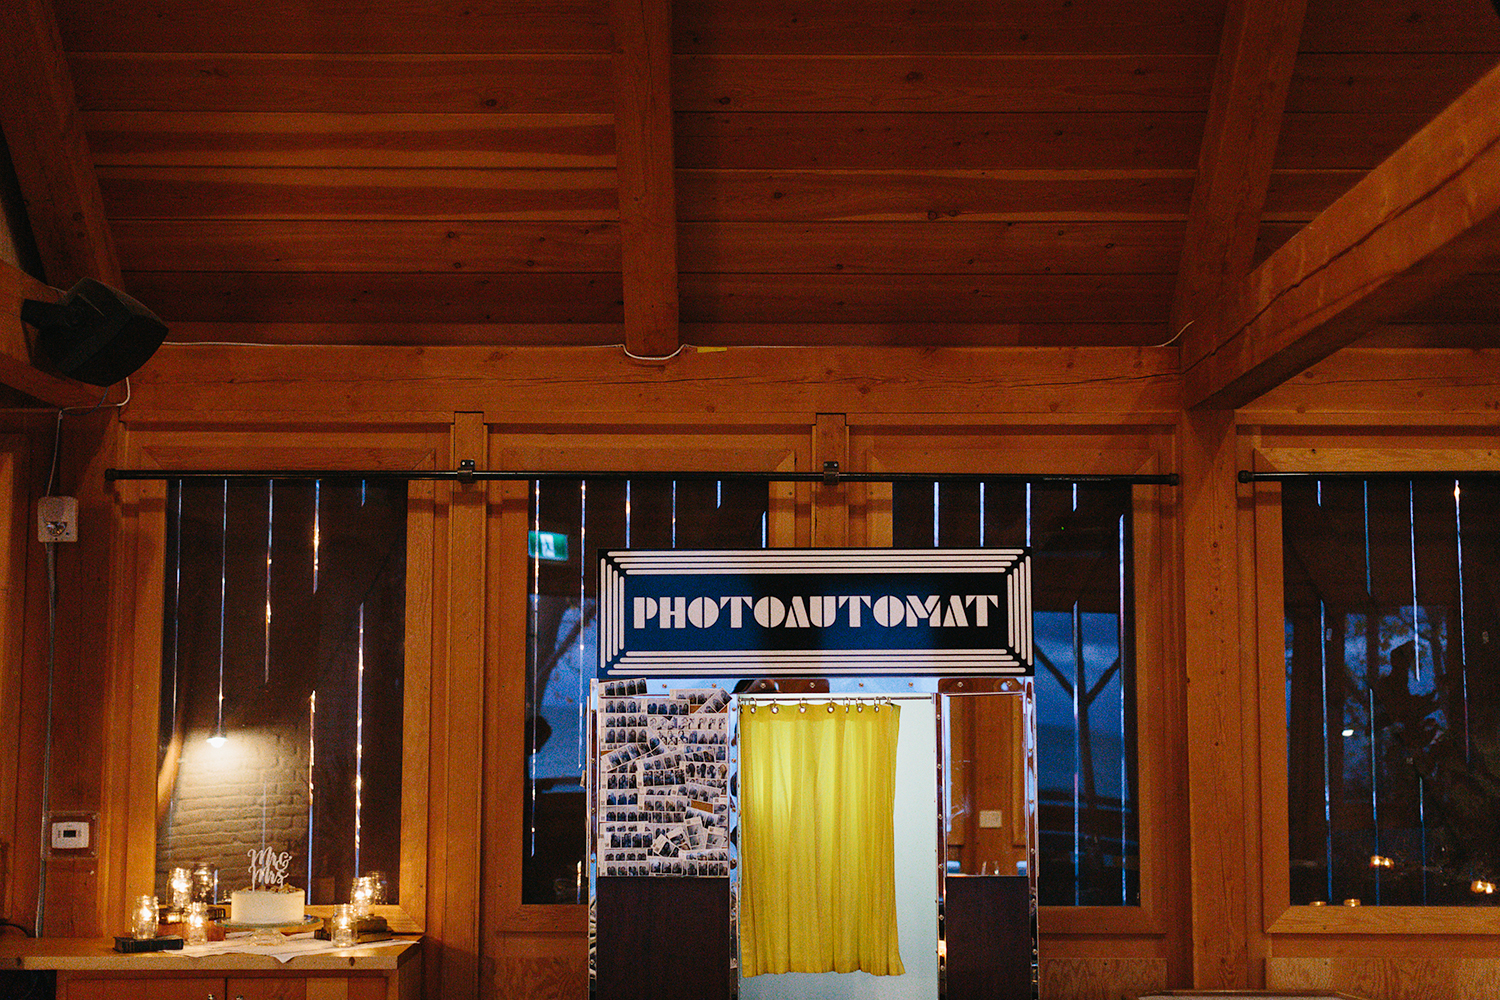 Prince-Edward-County-Wedding-Photographer-Drake-Devonshire-Elopement-Ryanne-Hollies-Photography-junebug-weddings-best-of-the-best-reception-in-playroom-photobooth-cabin-cottage.jpg